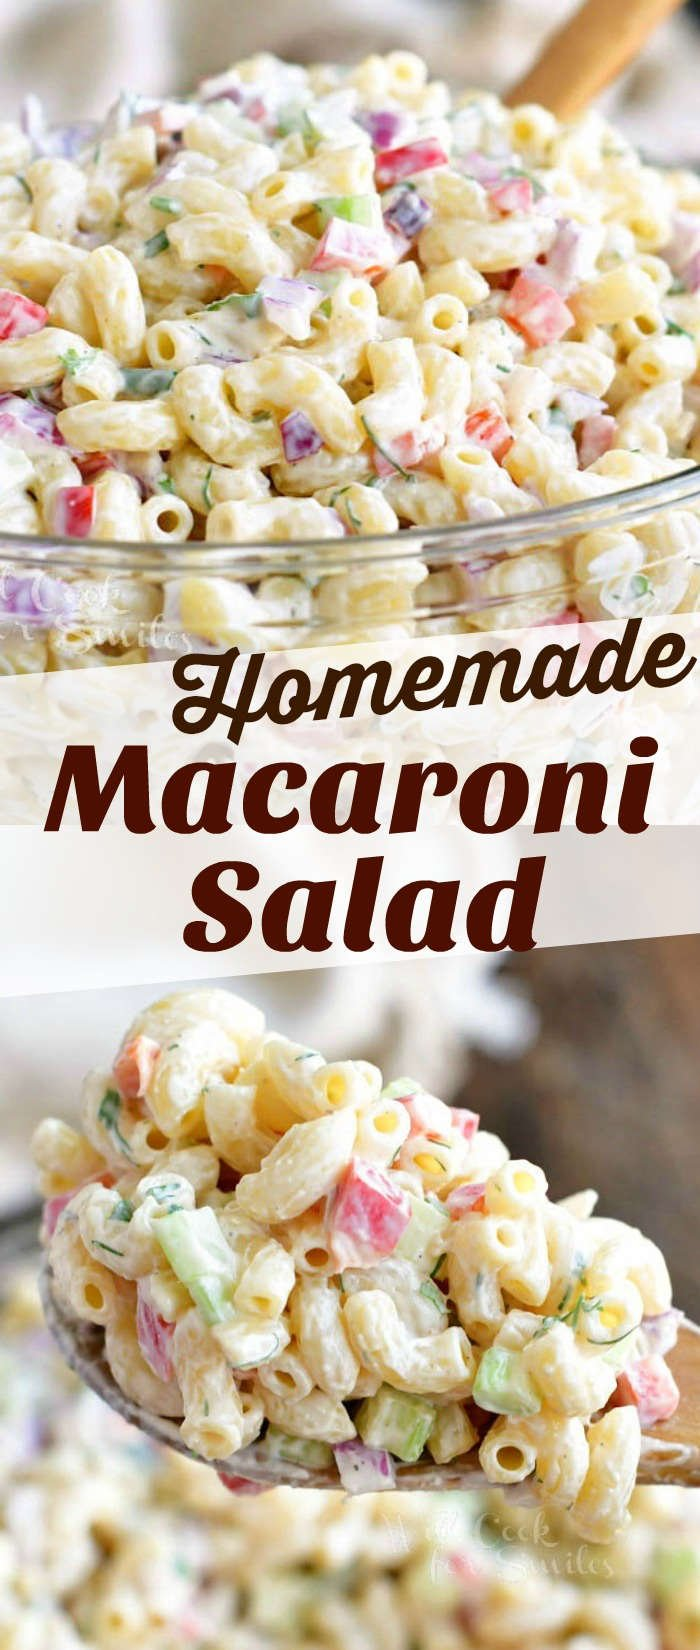 long collage of two images of side view of macaroni salad in a glass bowl and spoonful of salad